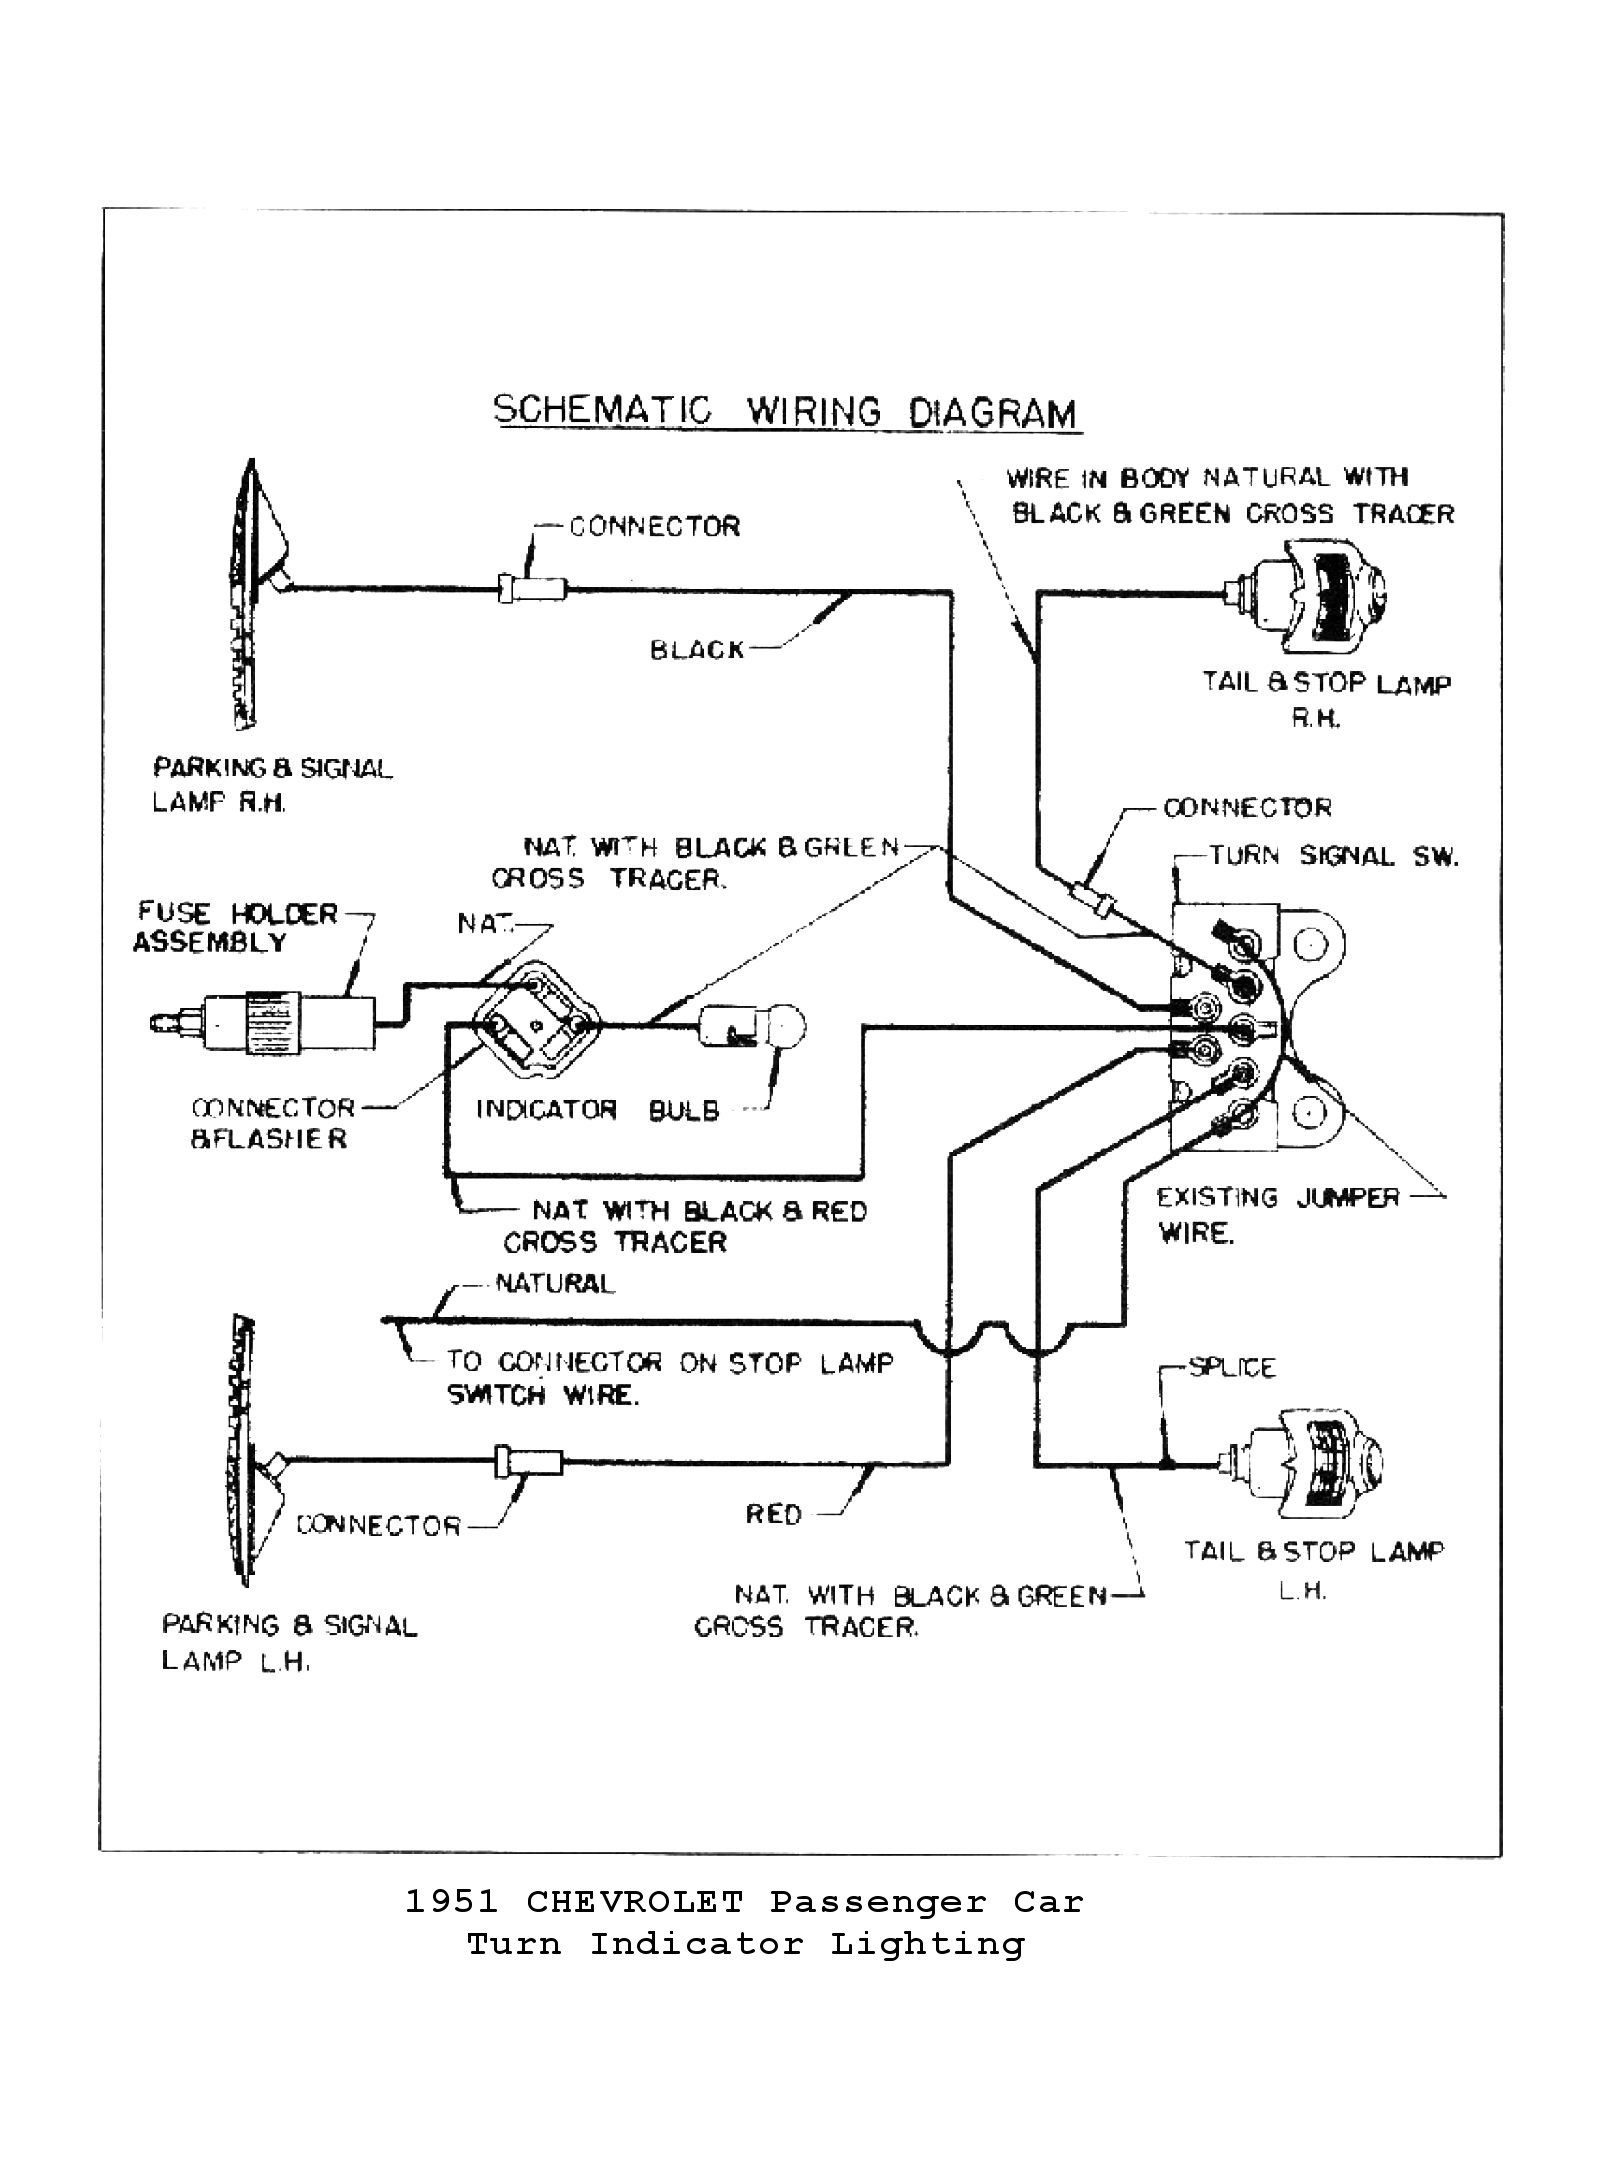 54 Chevy Truck Wiring Harness Schematic Integra Engine Bay Diagram 1951 Ford Manual Data Schema 93